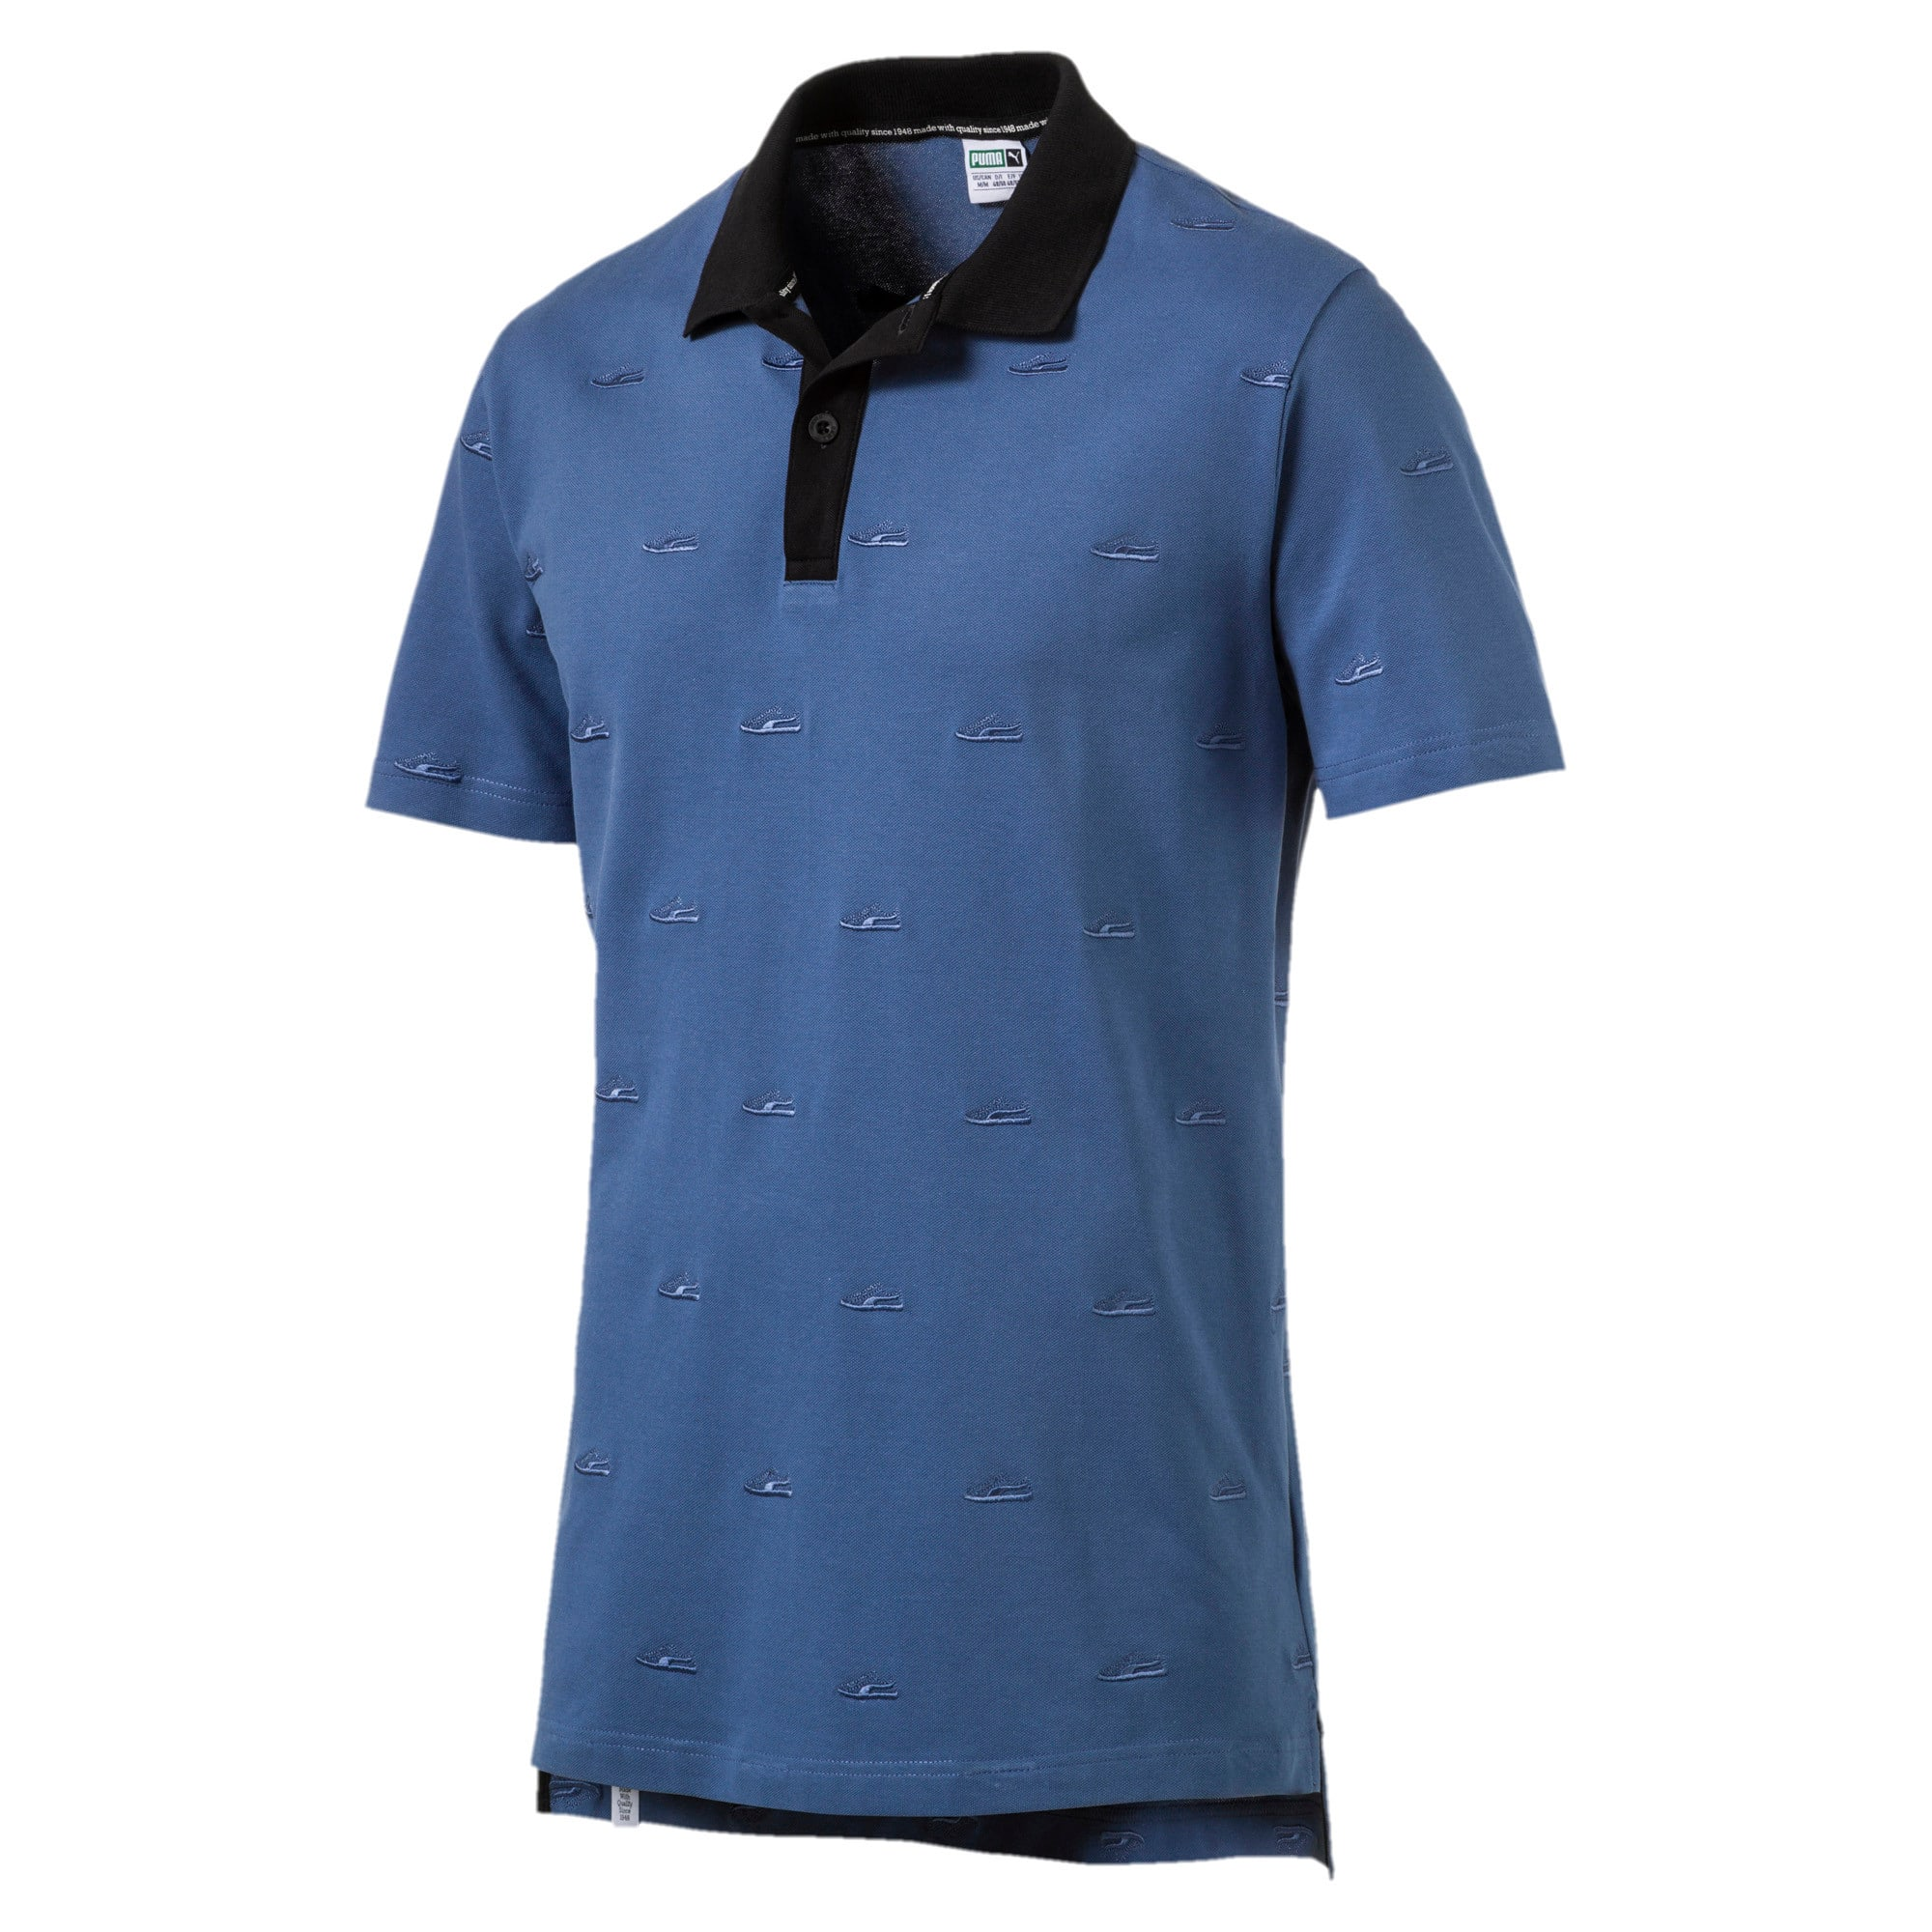 Thumbnail 2 of Men's Suede Embroidery Polo, Bijou Blue, medium-IND